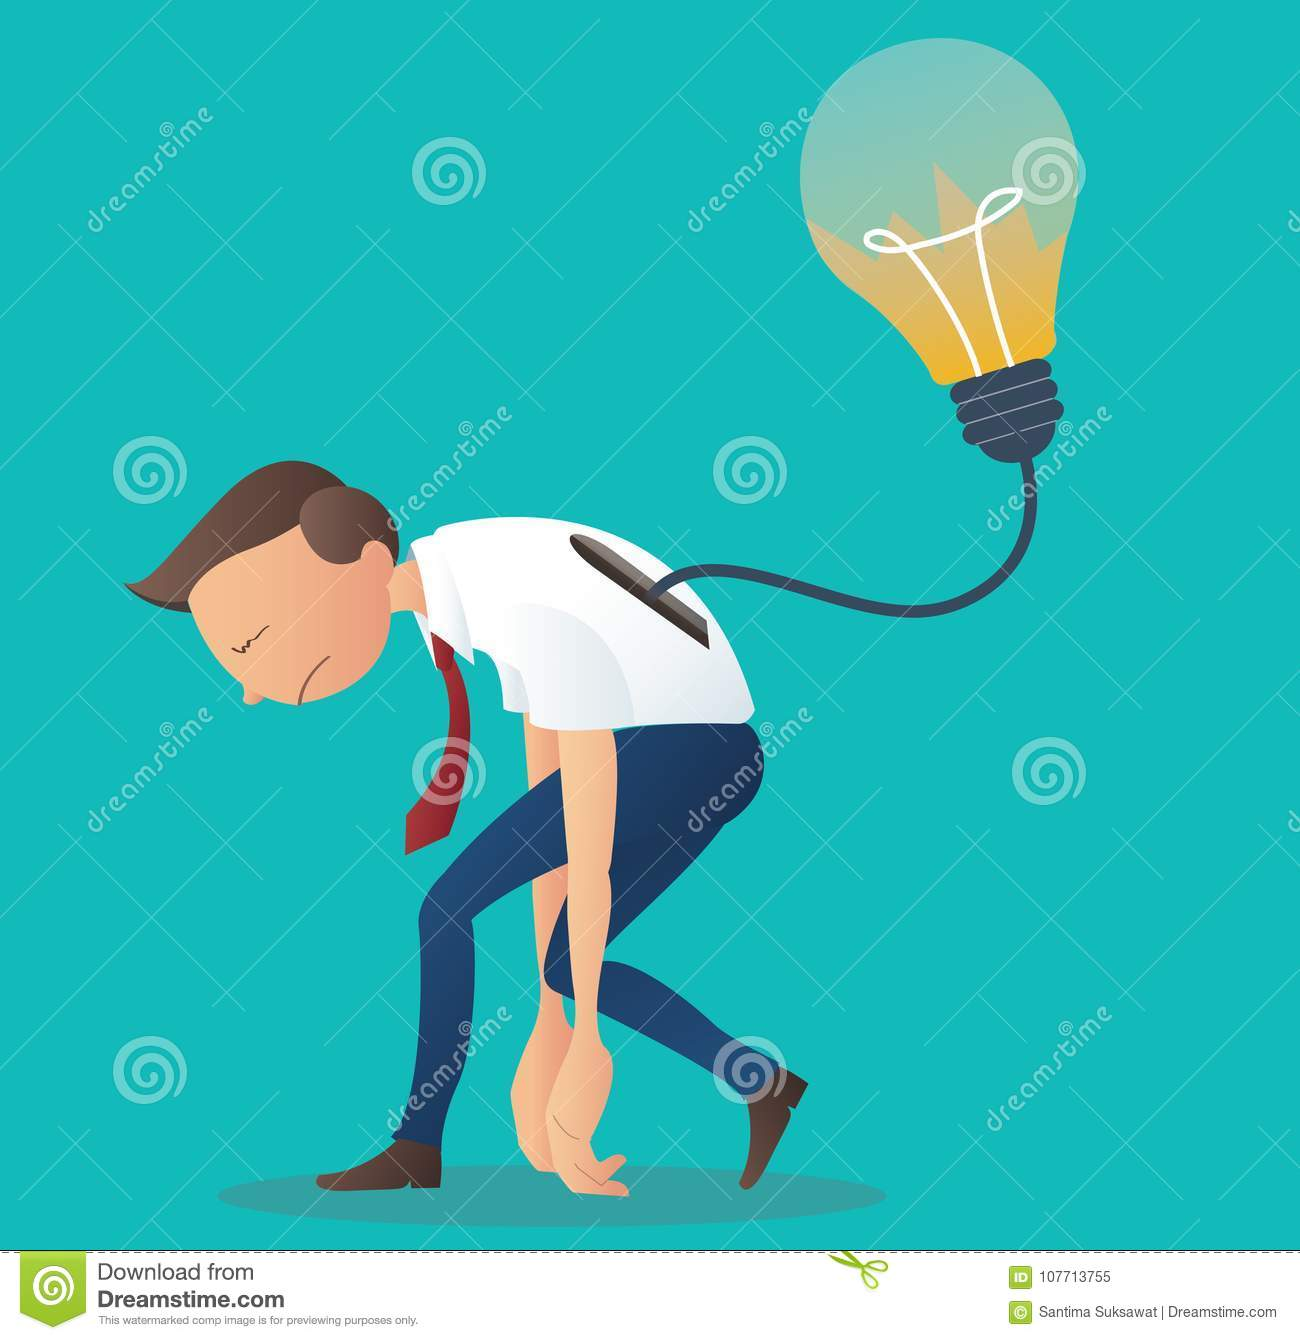 Crack light bulb in businessman back business symbol of crack light bulb in businessman back business symbol of thoughtless or problem in thinking concept biocorpaavc